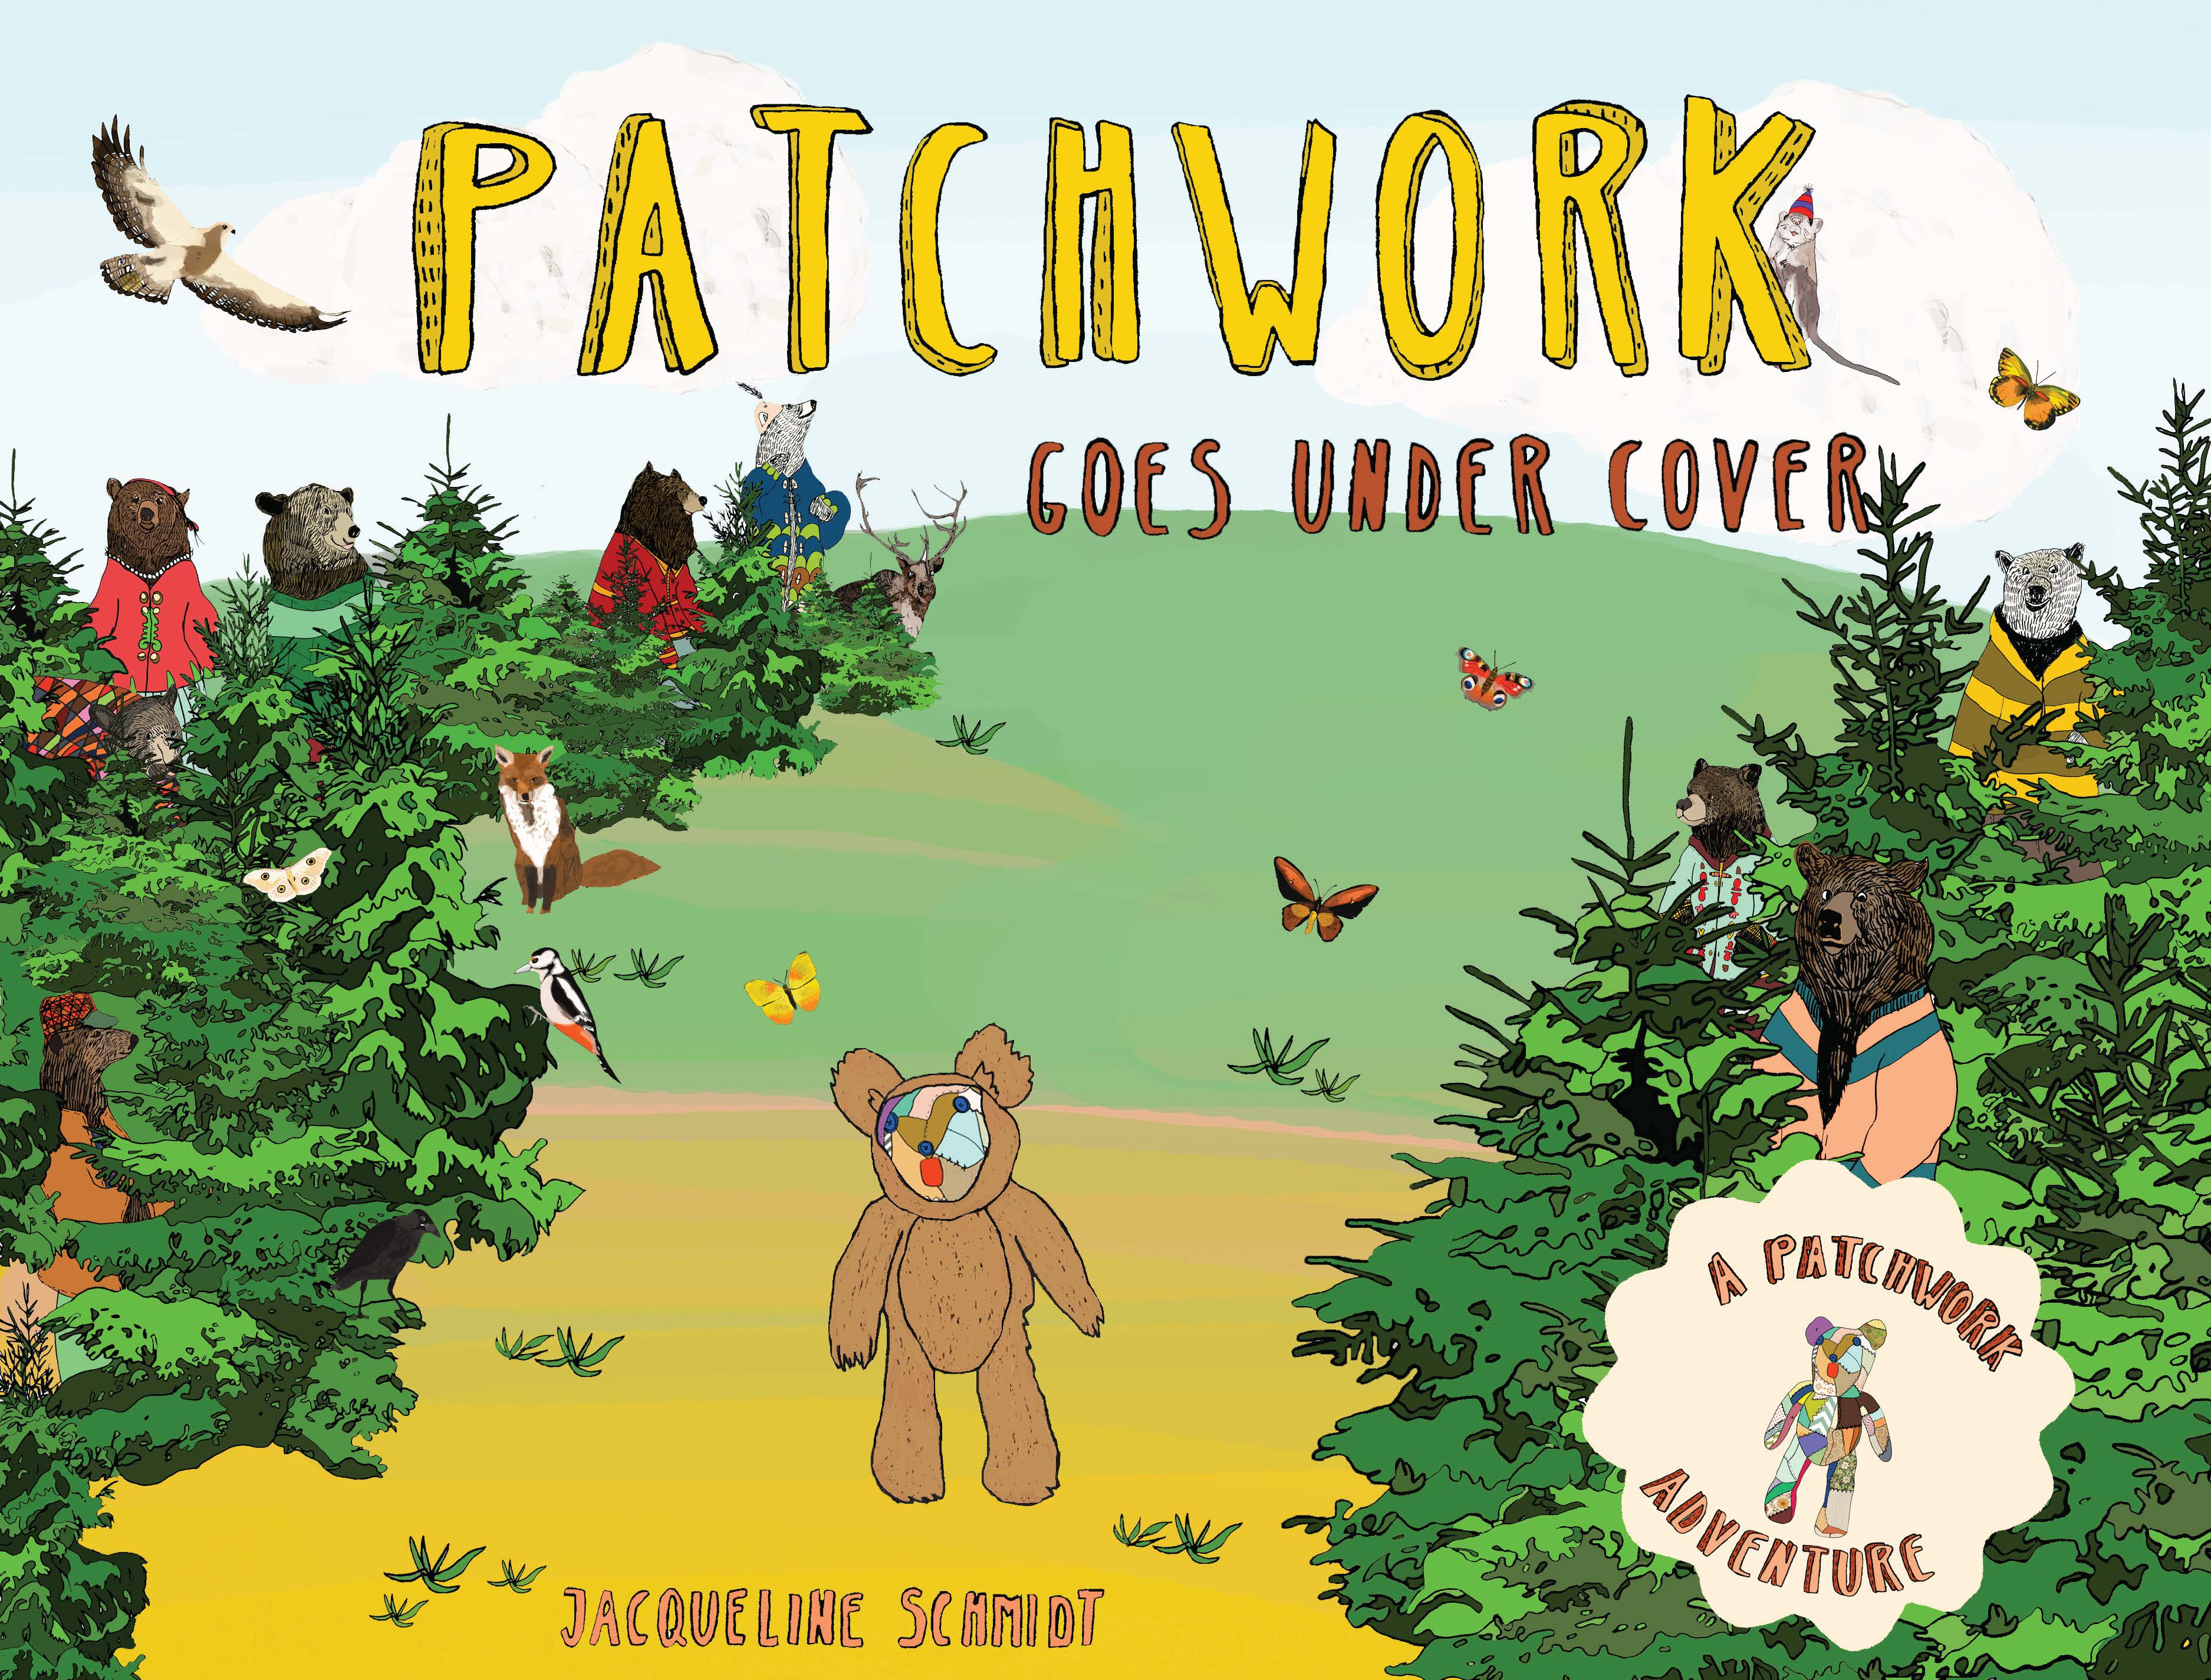 POW! Kids Sunday Story Time: Patchwork Goes Under Cover by Jacqueline Schmidt